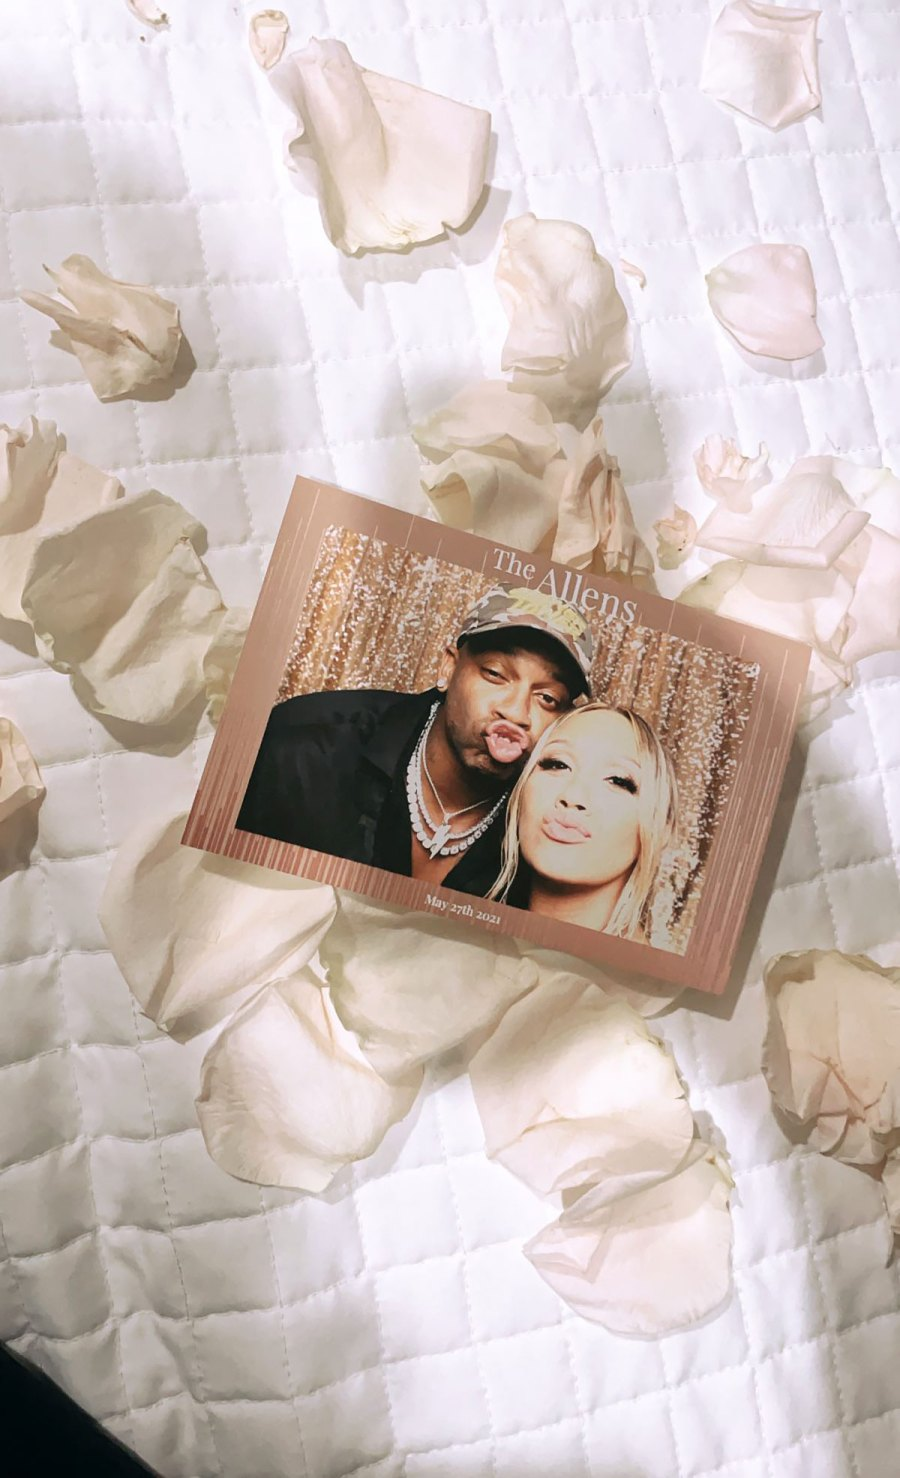 Country Star Jimmie Allen Marries Alexis Gale